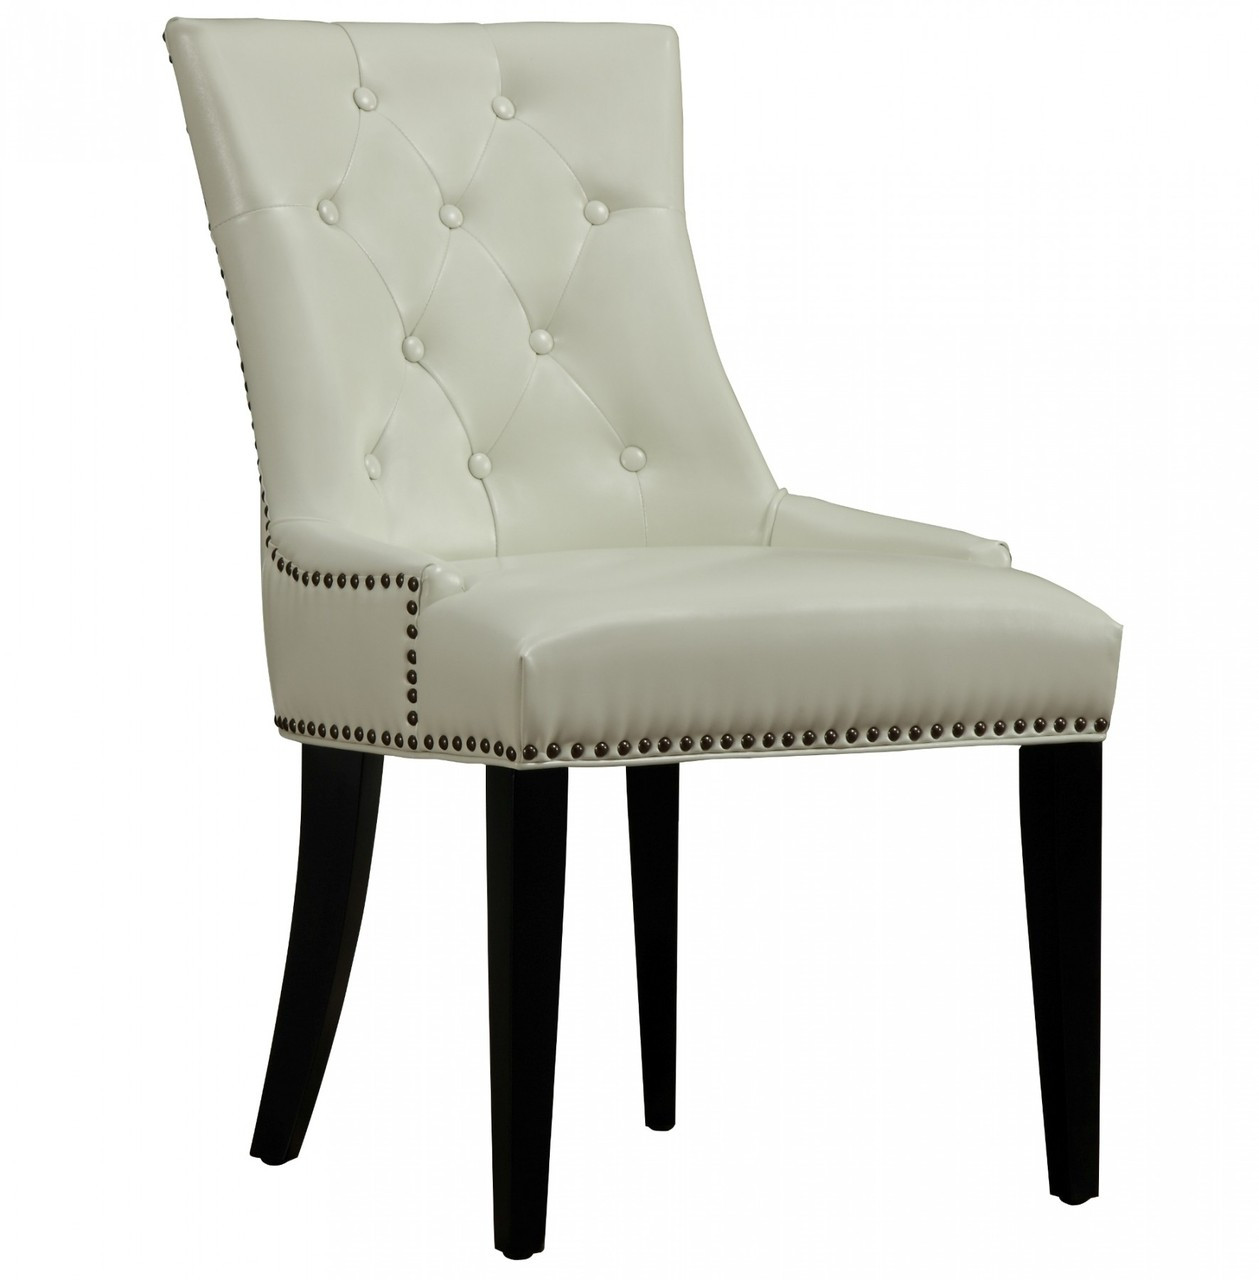 Uptown Tufted Cream Leather Dining Chair Zin Home